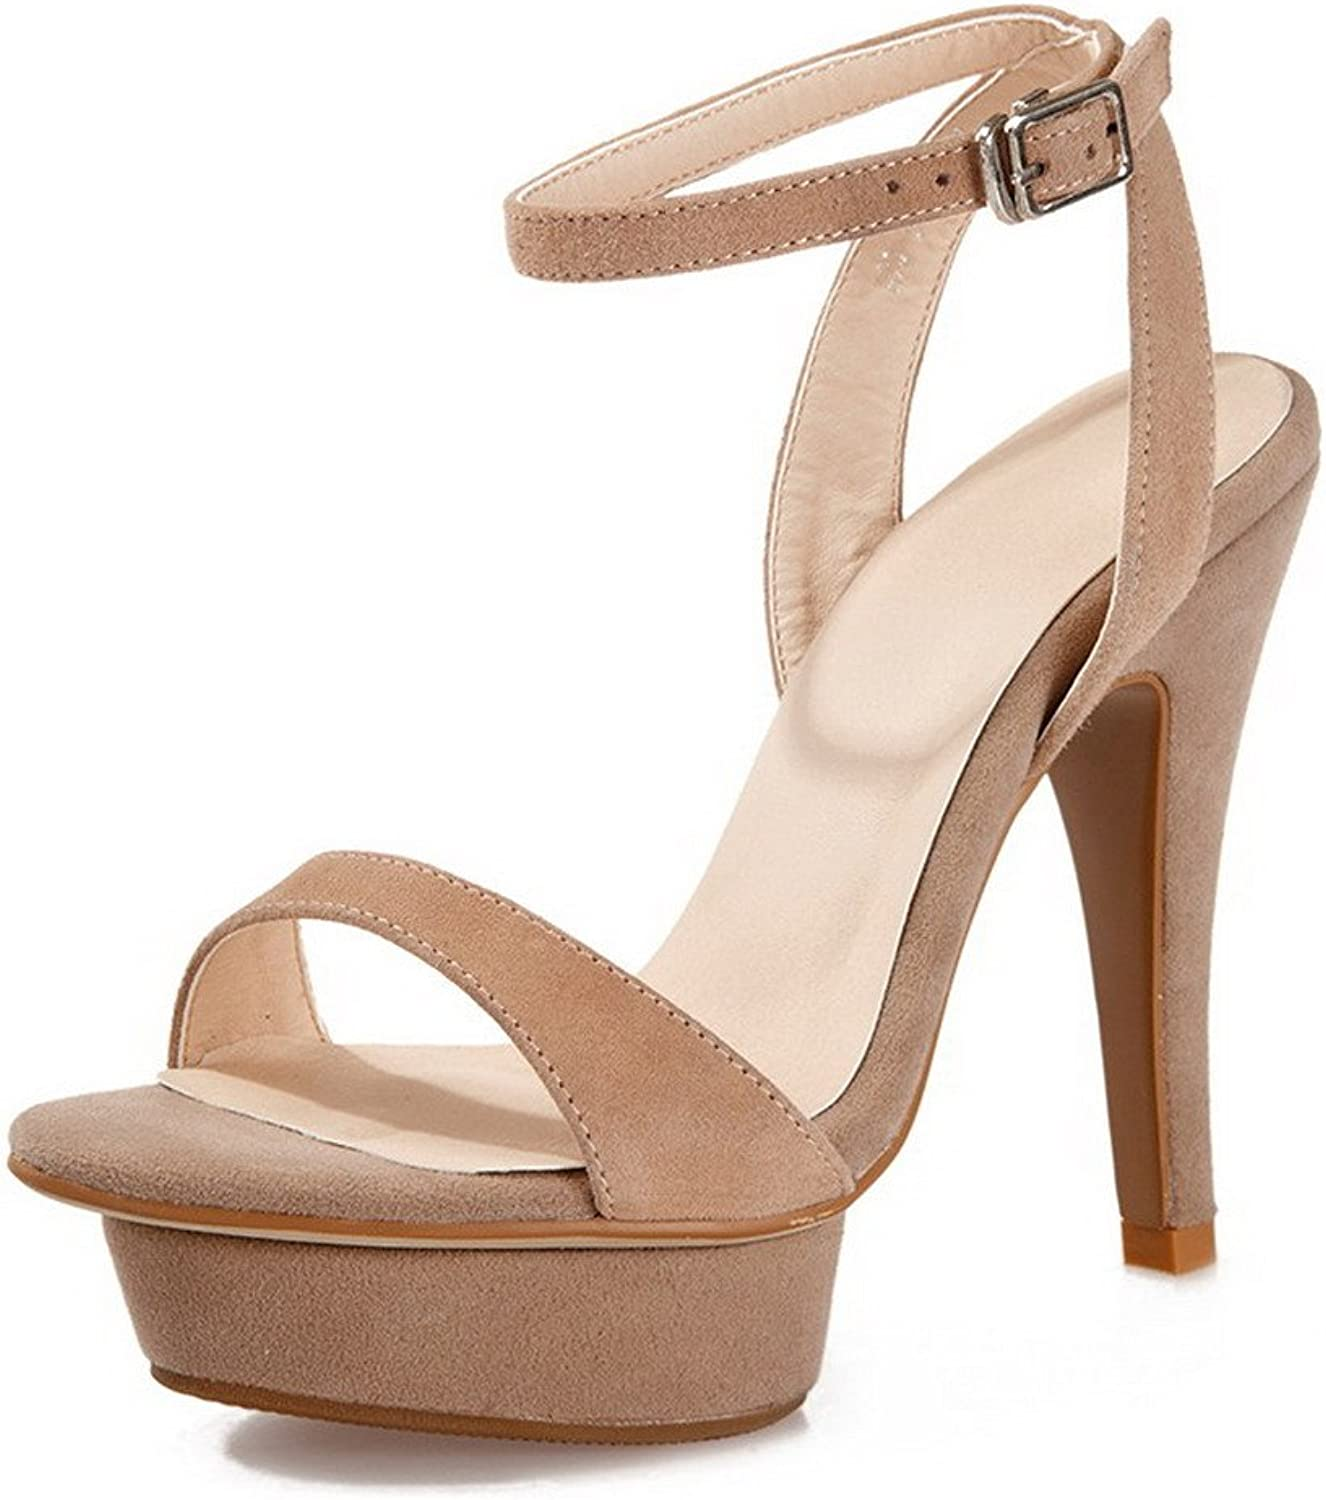 AllhqFashion Women's Solid Frosted High-Heels Open Toe Buckle Sandals